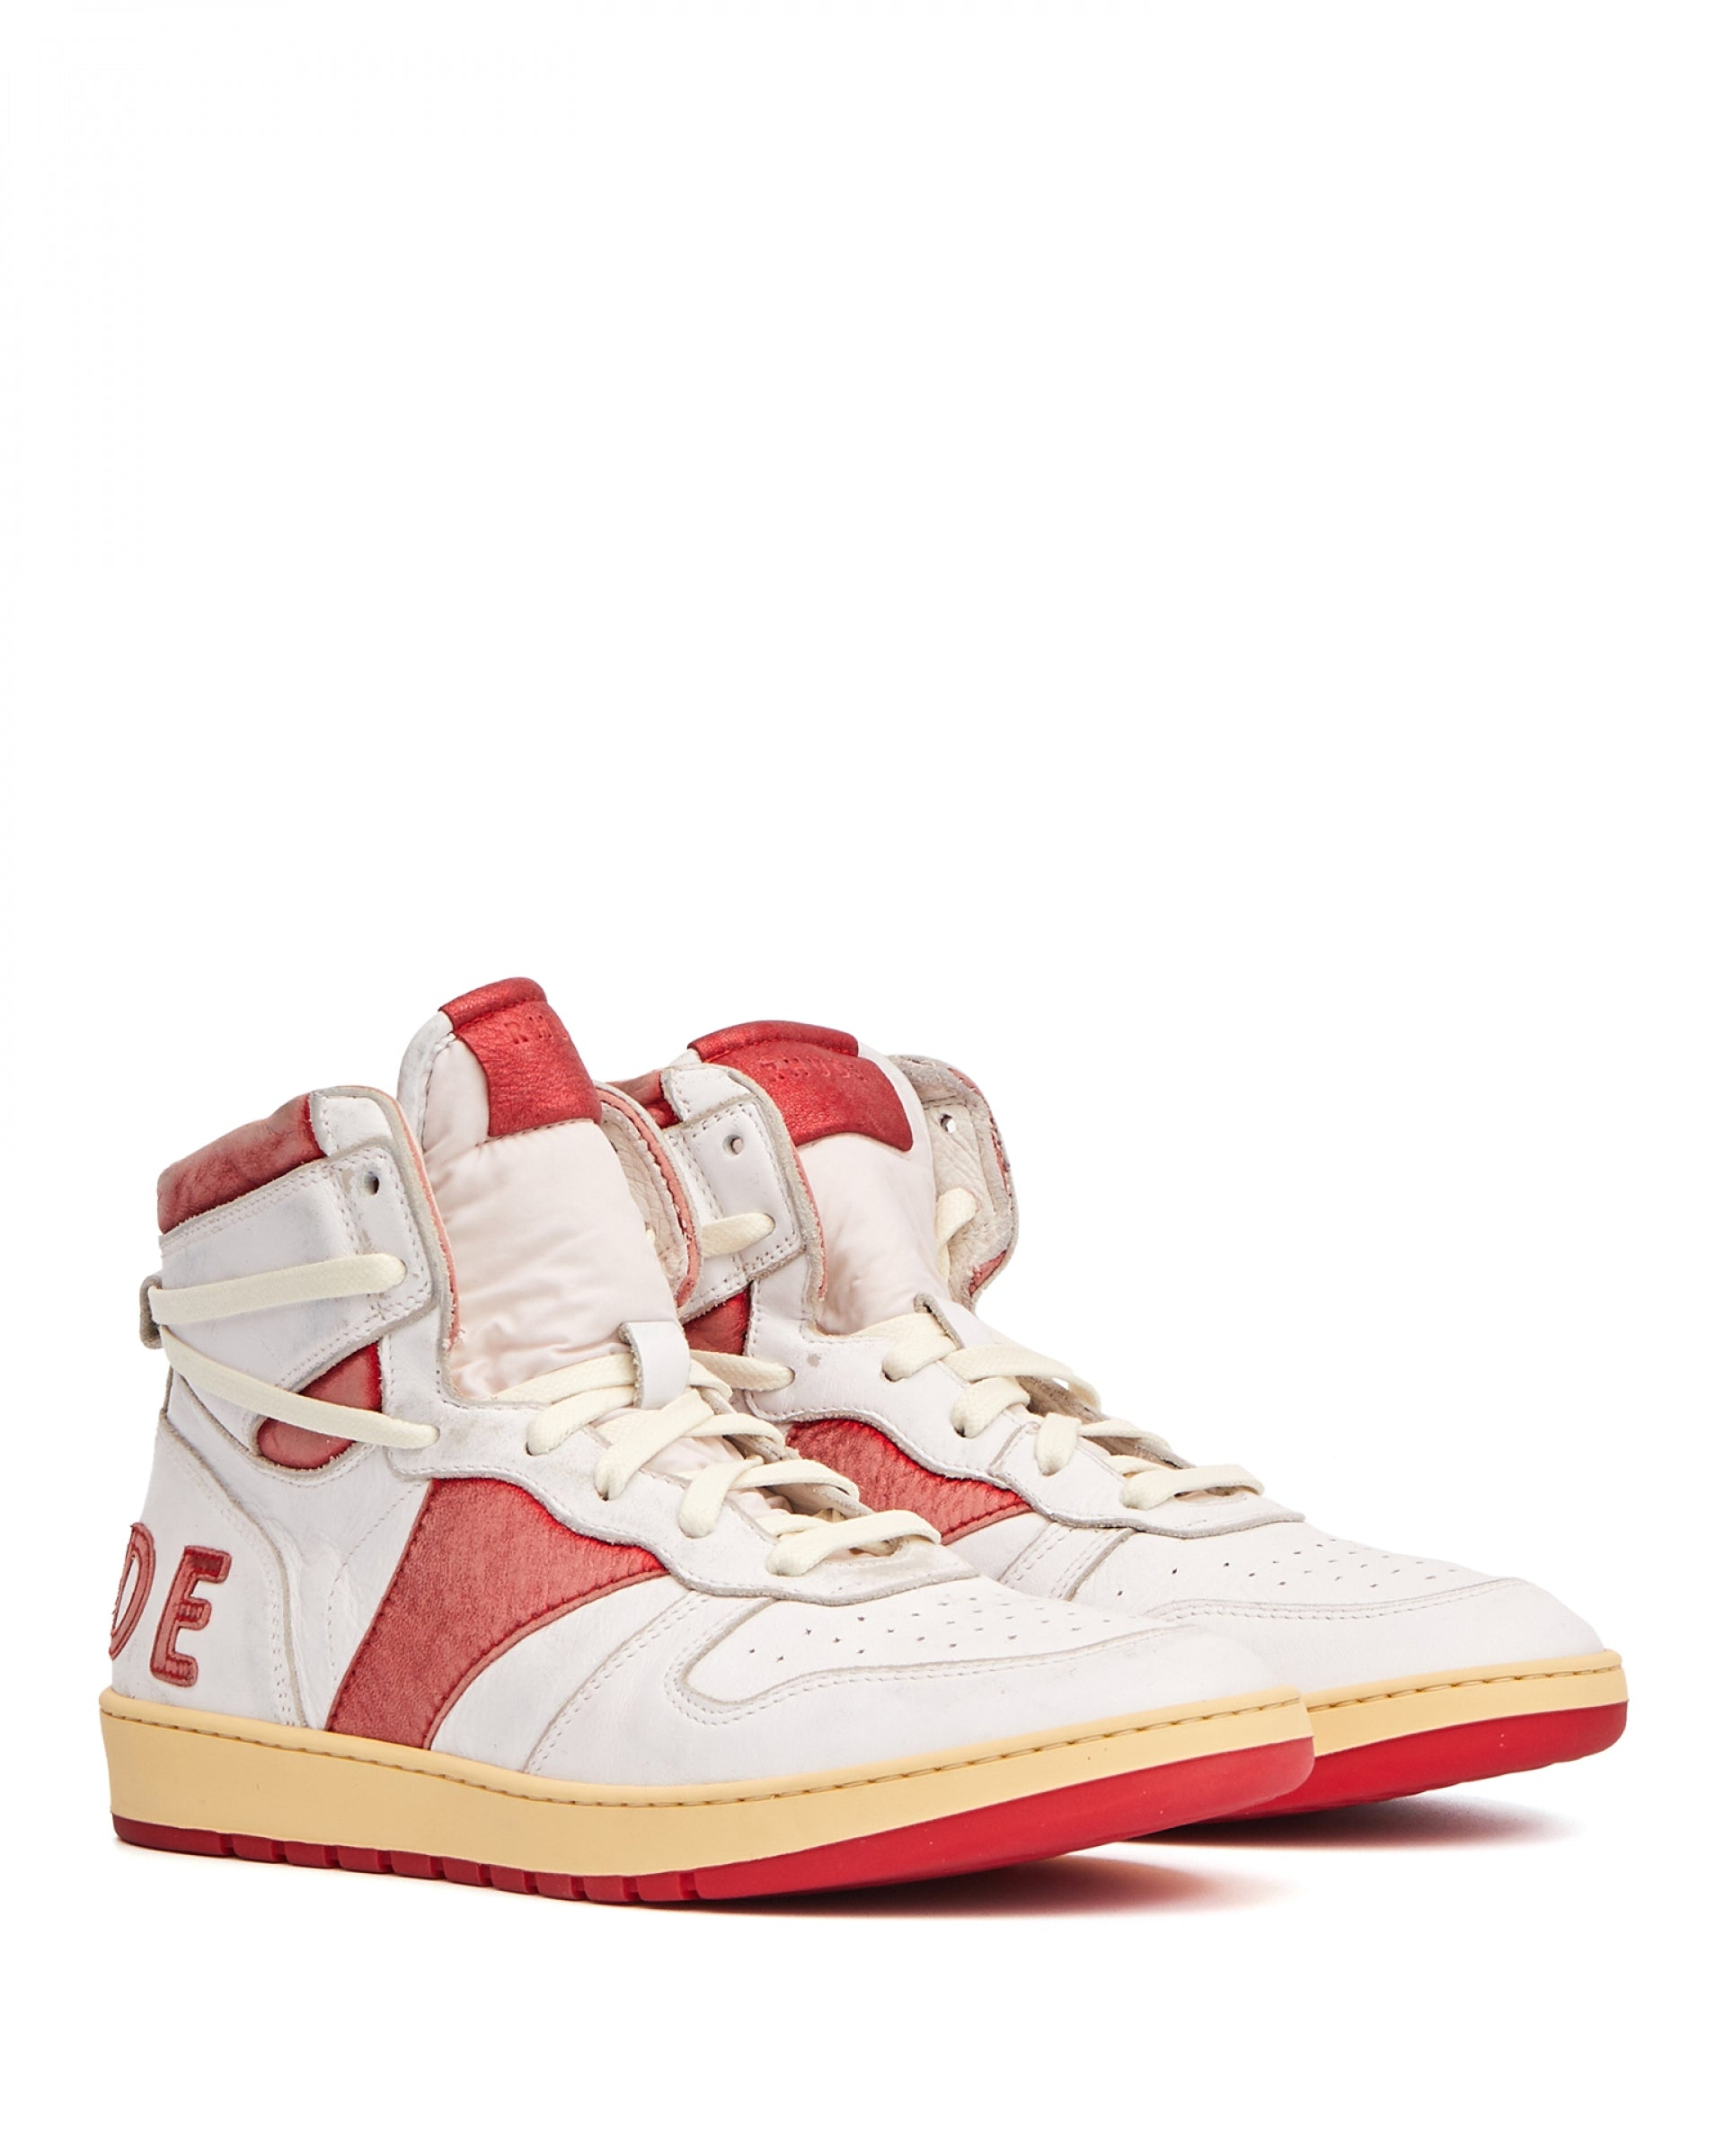 RHECESS-HI - WHITE / RED